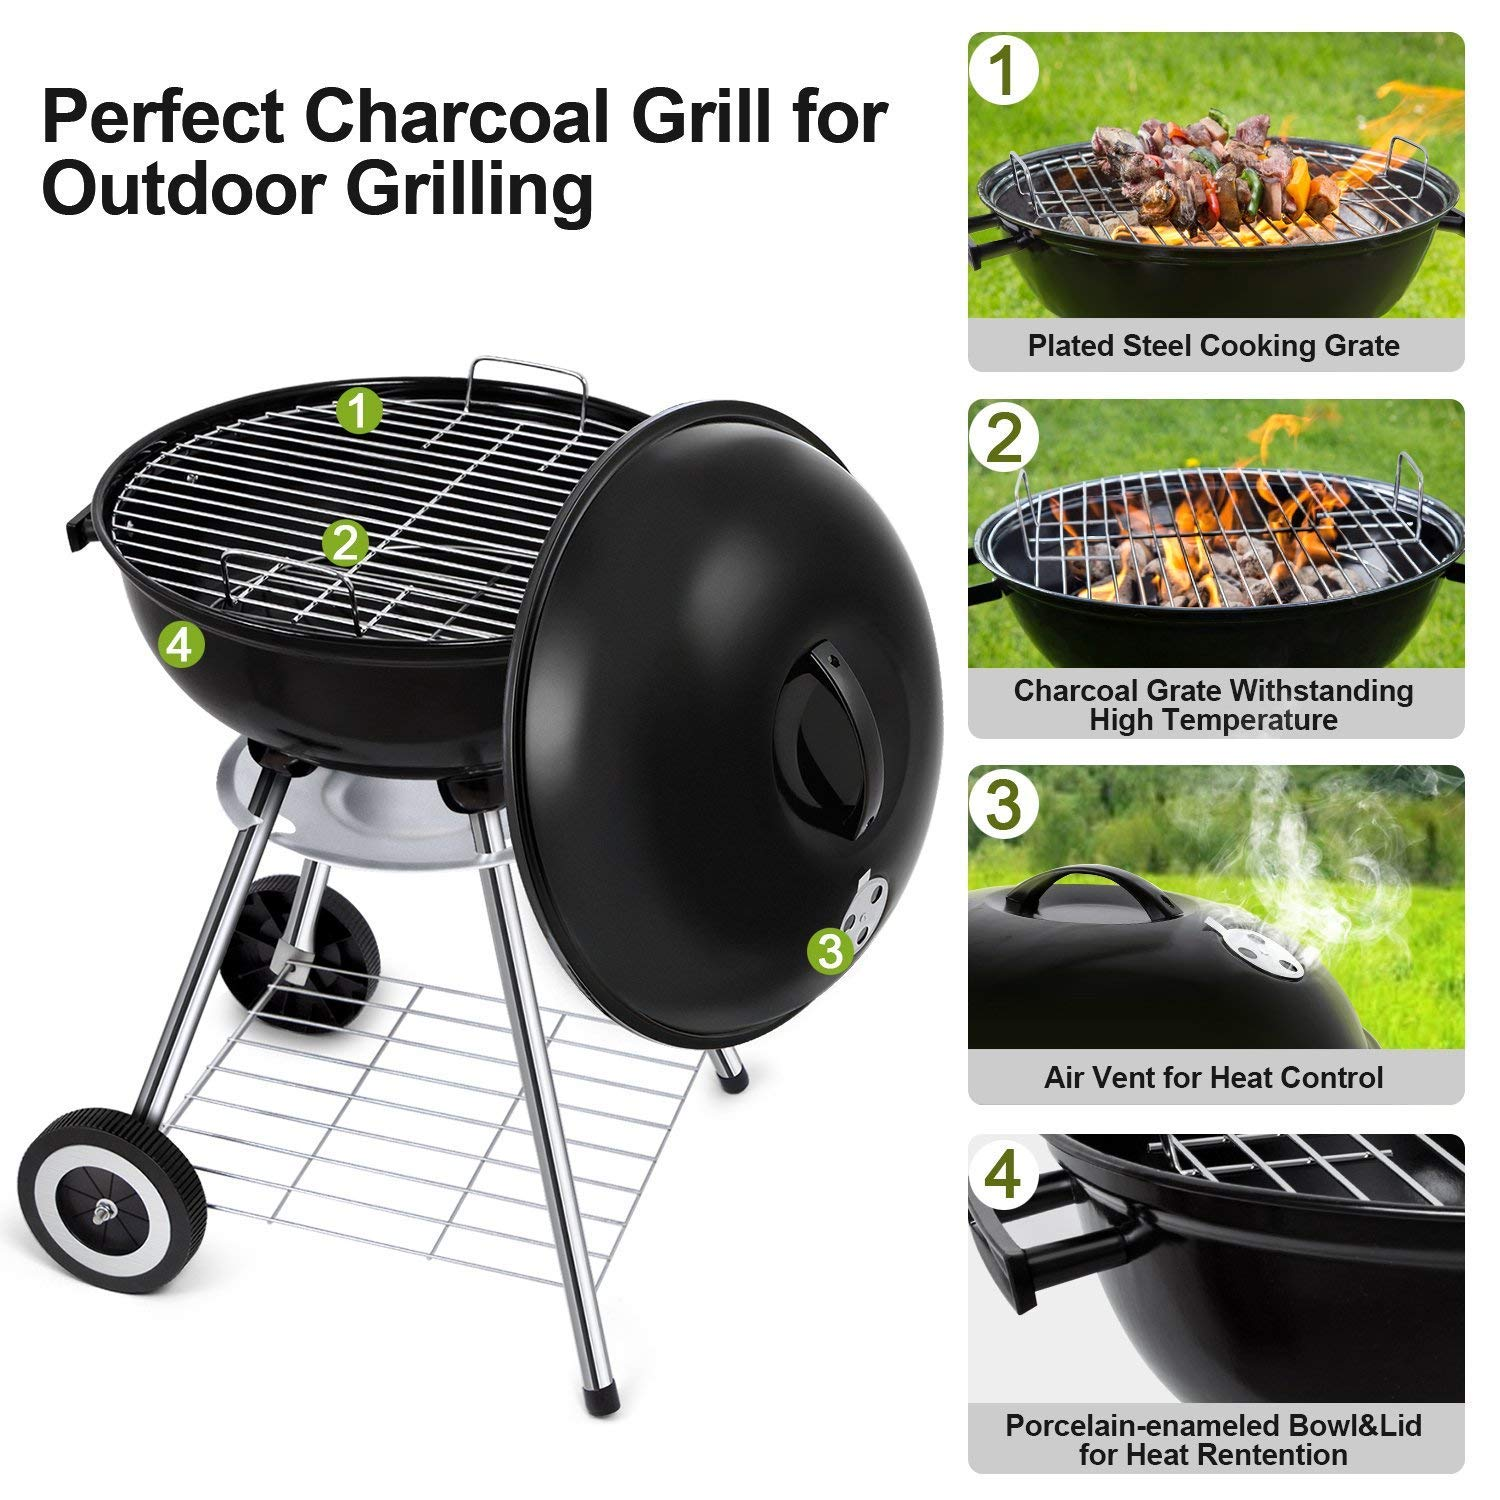 Portable Charcoal Grill for Outdoor Grilling 18inch ...